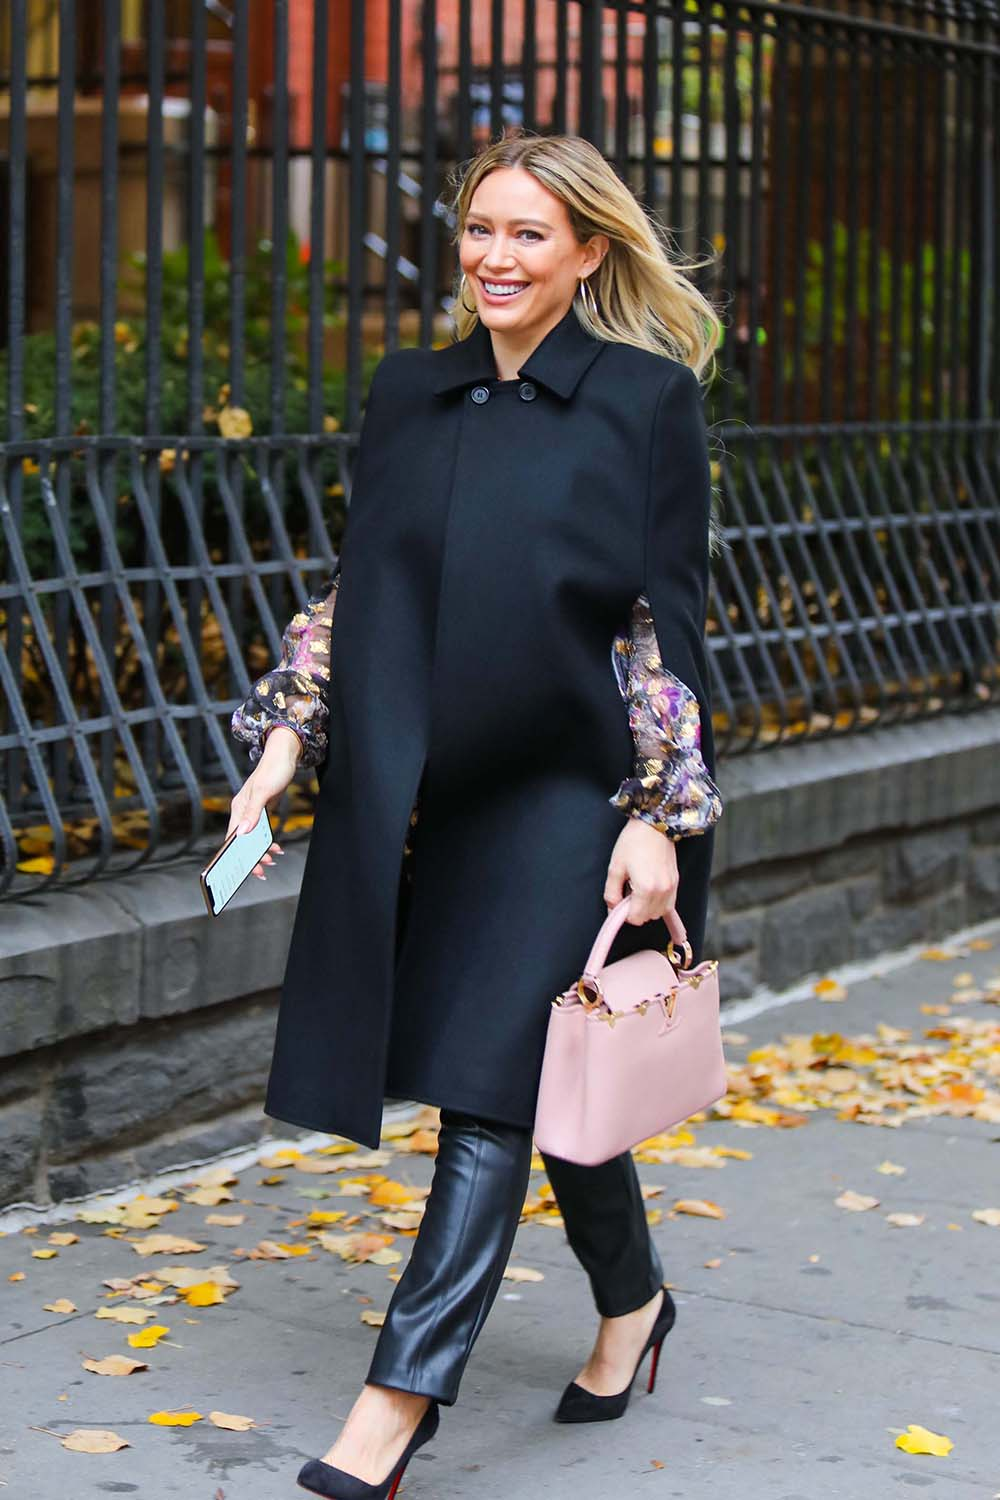 Hilary Duff seen on the set of Younger in New York City